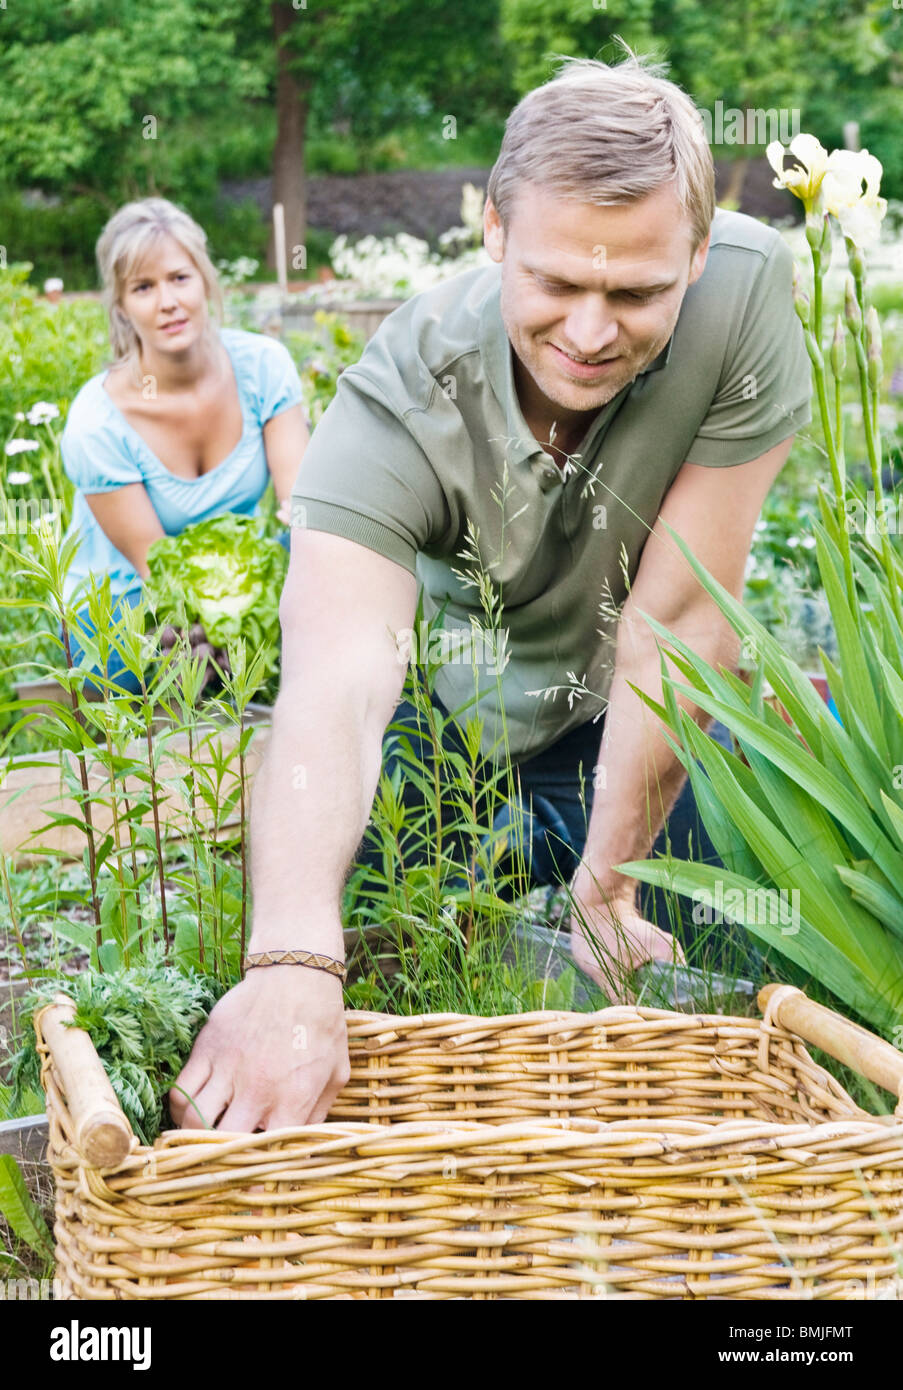 Couple taking care of garden - Stock Image